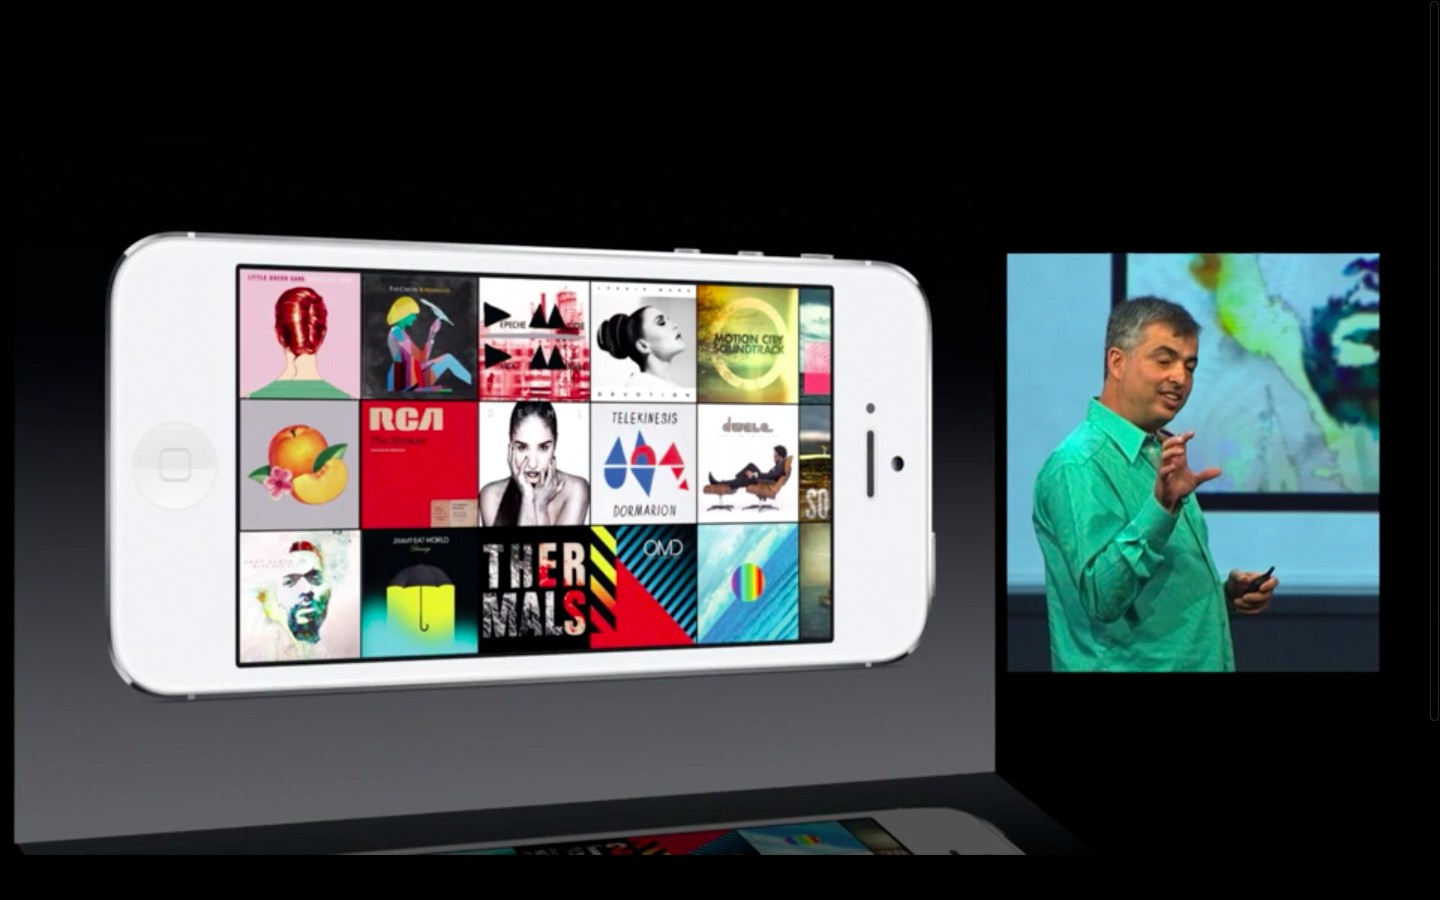 Apple: iOS 7 mit Multitasking und neuem Interface - iOS 7 (Bild: Apple/Screenshot: Golem.de)